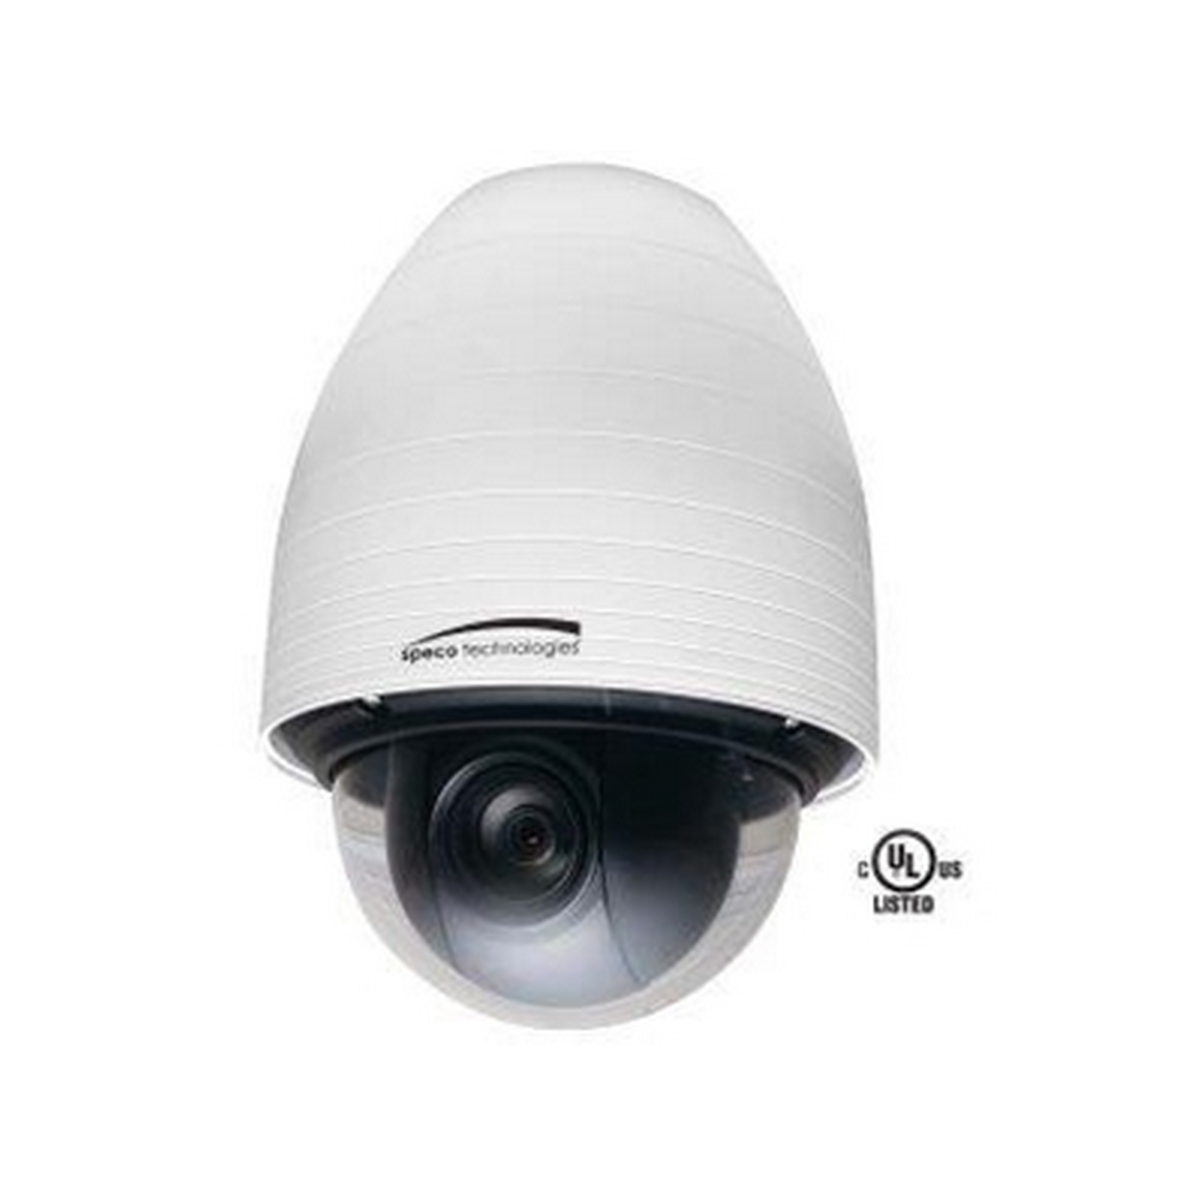 Wall Mount for O2P30 PTZ Dome Camera